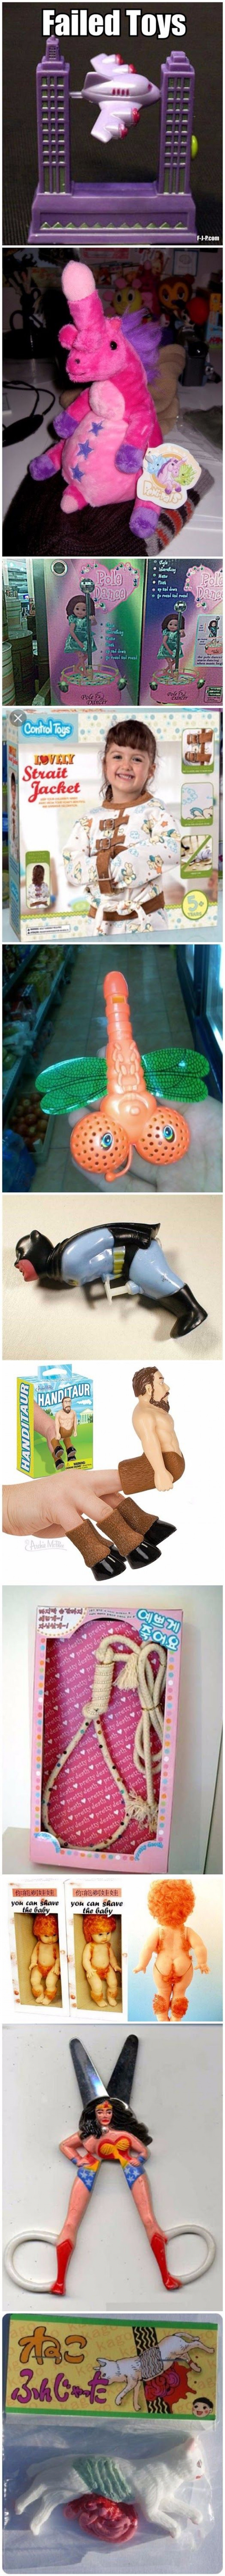 Toys That Totally Failed